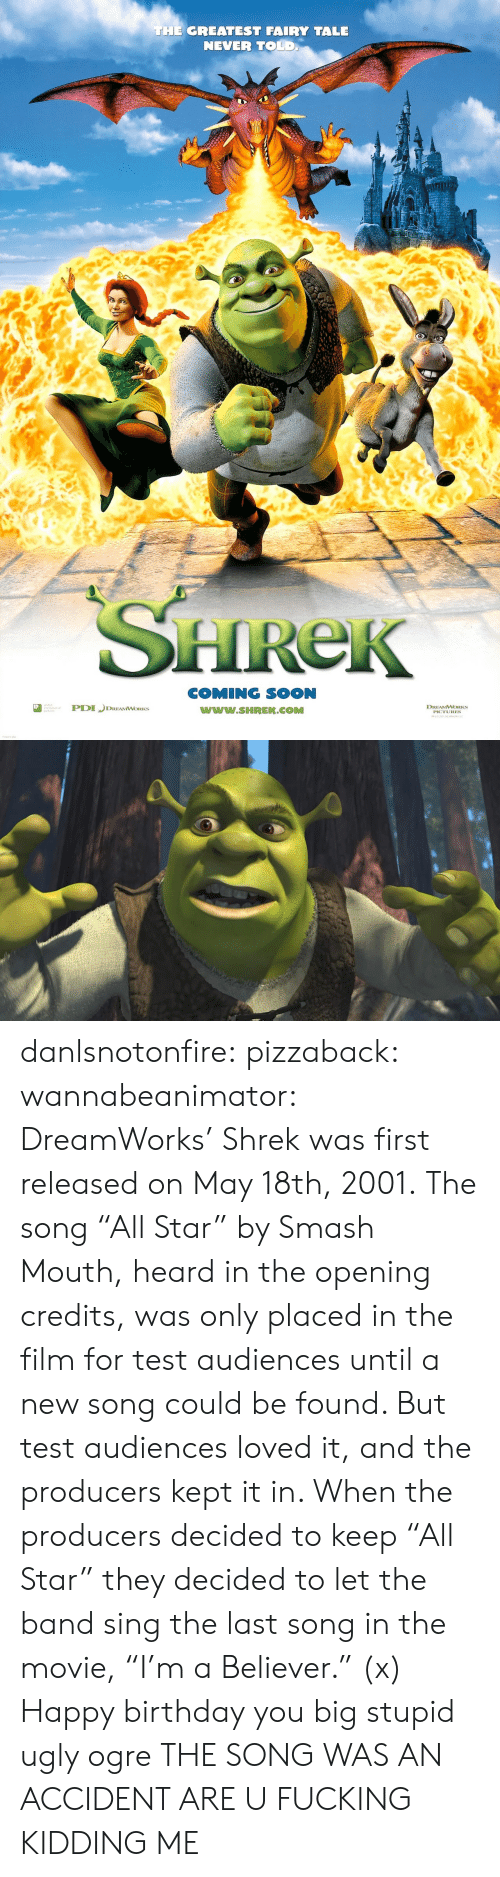 """dreamworks: THE GREATEST FAIRY TALE  NEVER TOLD  HReK  COMING SOON  www.SHREK.COMM  ted  DREAMWORKS danlsnotonfire:  pizzaback:   wannabeanimator:   DreamWorks' Shrek was first released on May 18th, 2001. The song """"All Star"""" by Smash Mouth, heard in the opening credits, was only placed in the film for test audiences until a new song could be found. But test audiences loved it, and the producers kept it in. When the producers decided to keep """"All Star"""" they decided to let the band sing the last song in the movie, """"I'm a Believer."""" (x)   Happy birthday you big stupid ugly ogre   THE SONG WAS AN ACCIDENT ARE U FUCKING KIDDING ME"""